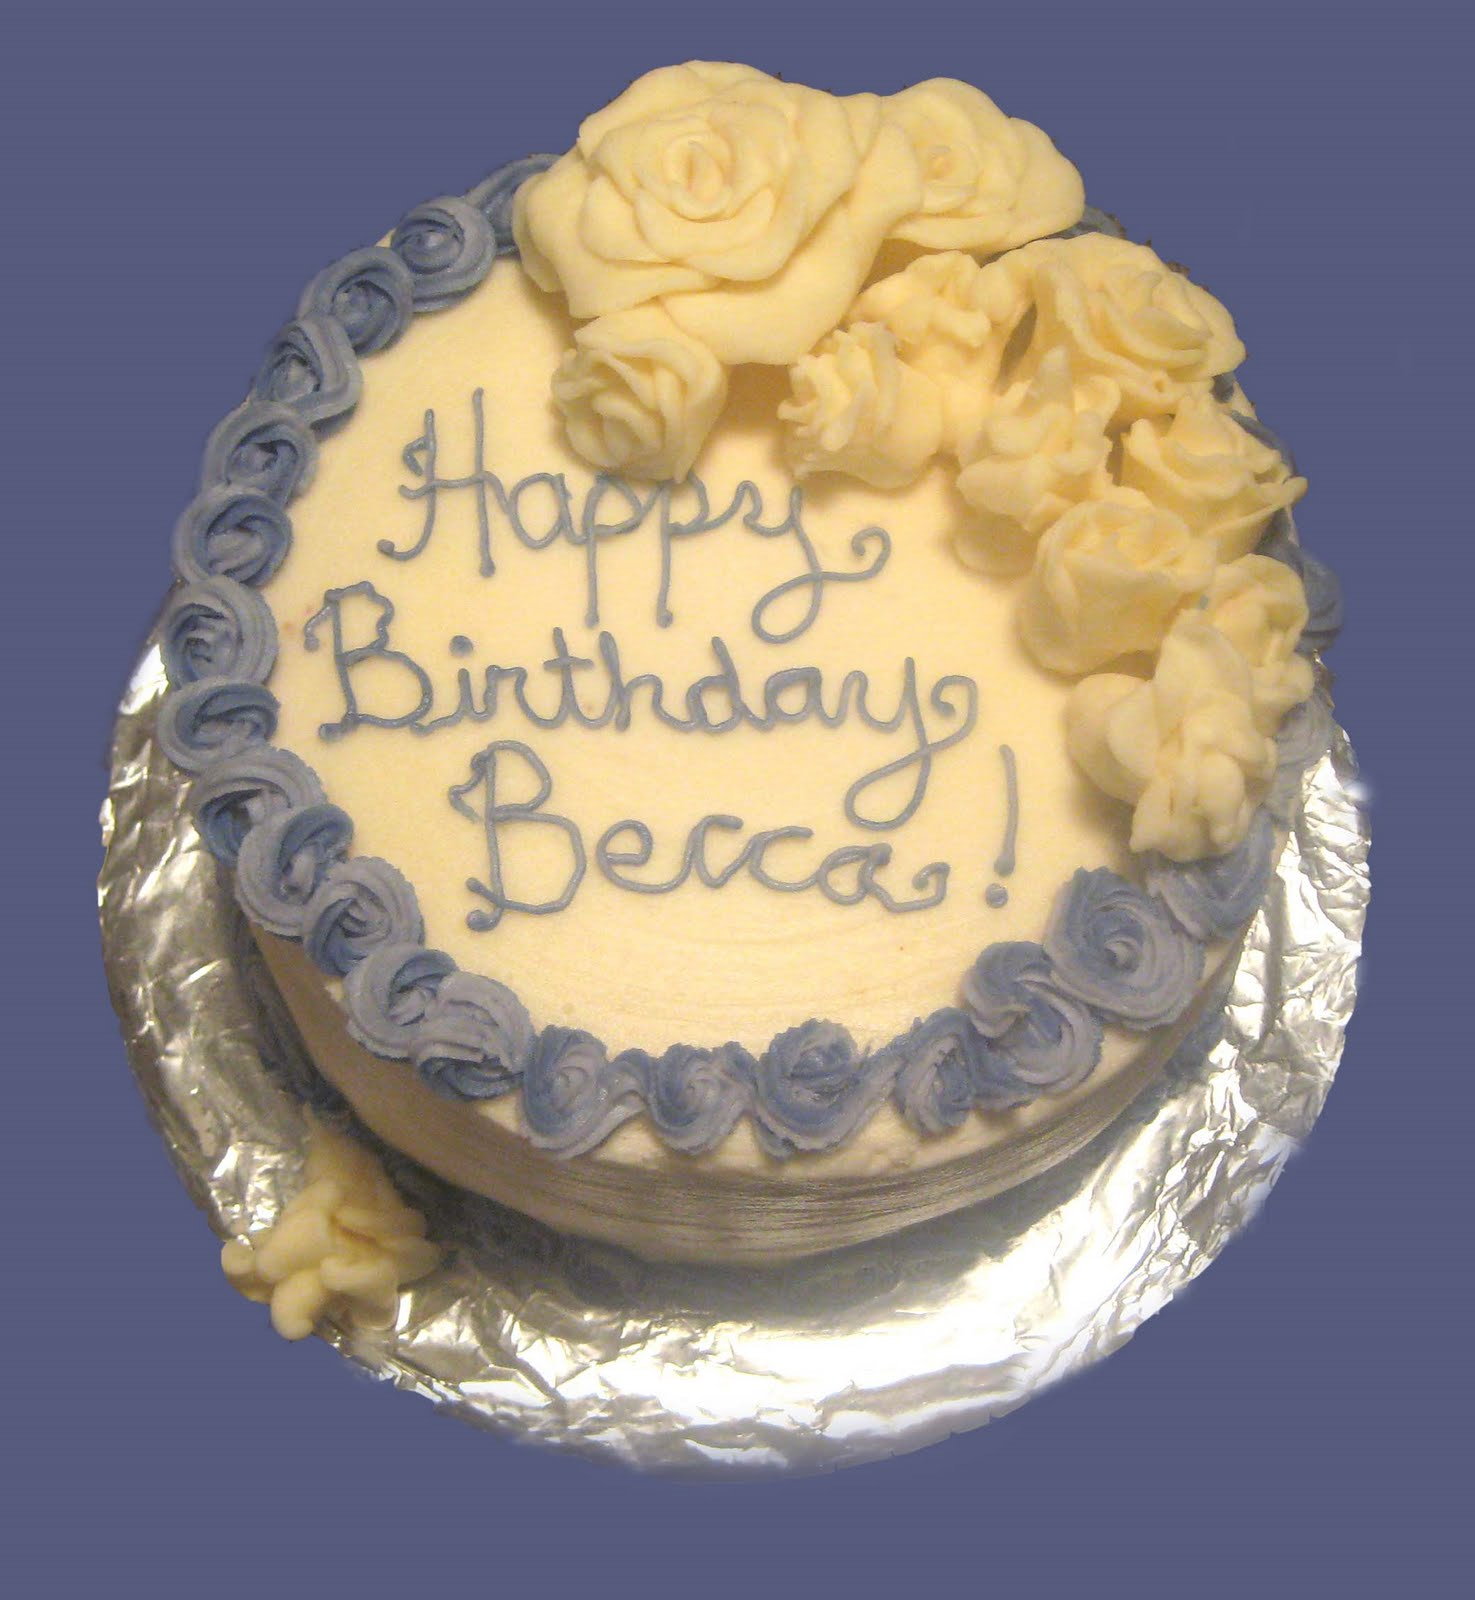 Happy Birthday Becca Cake